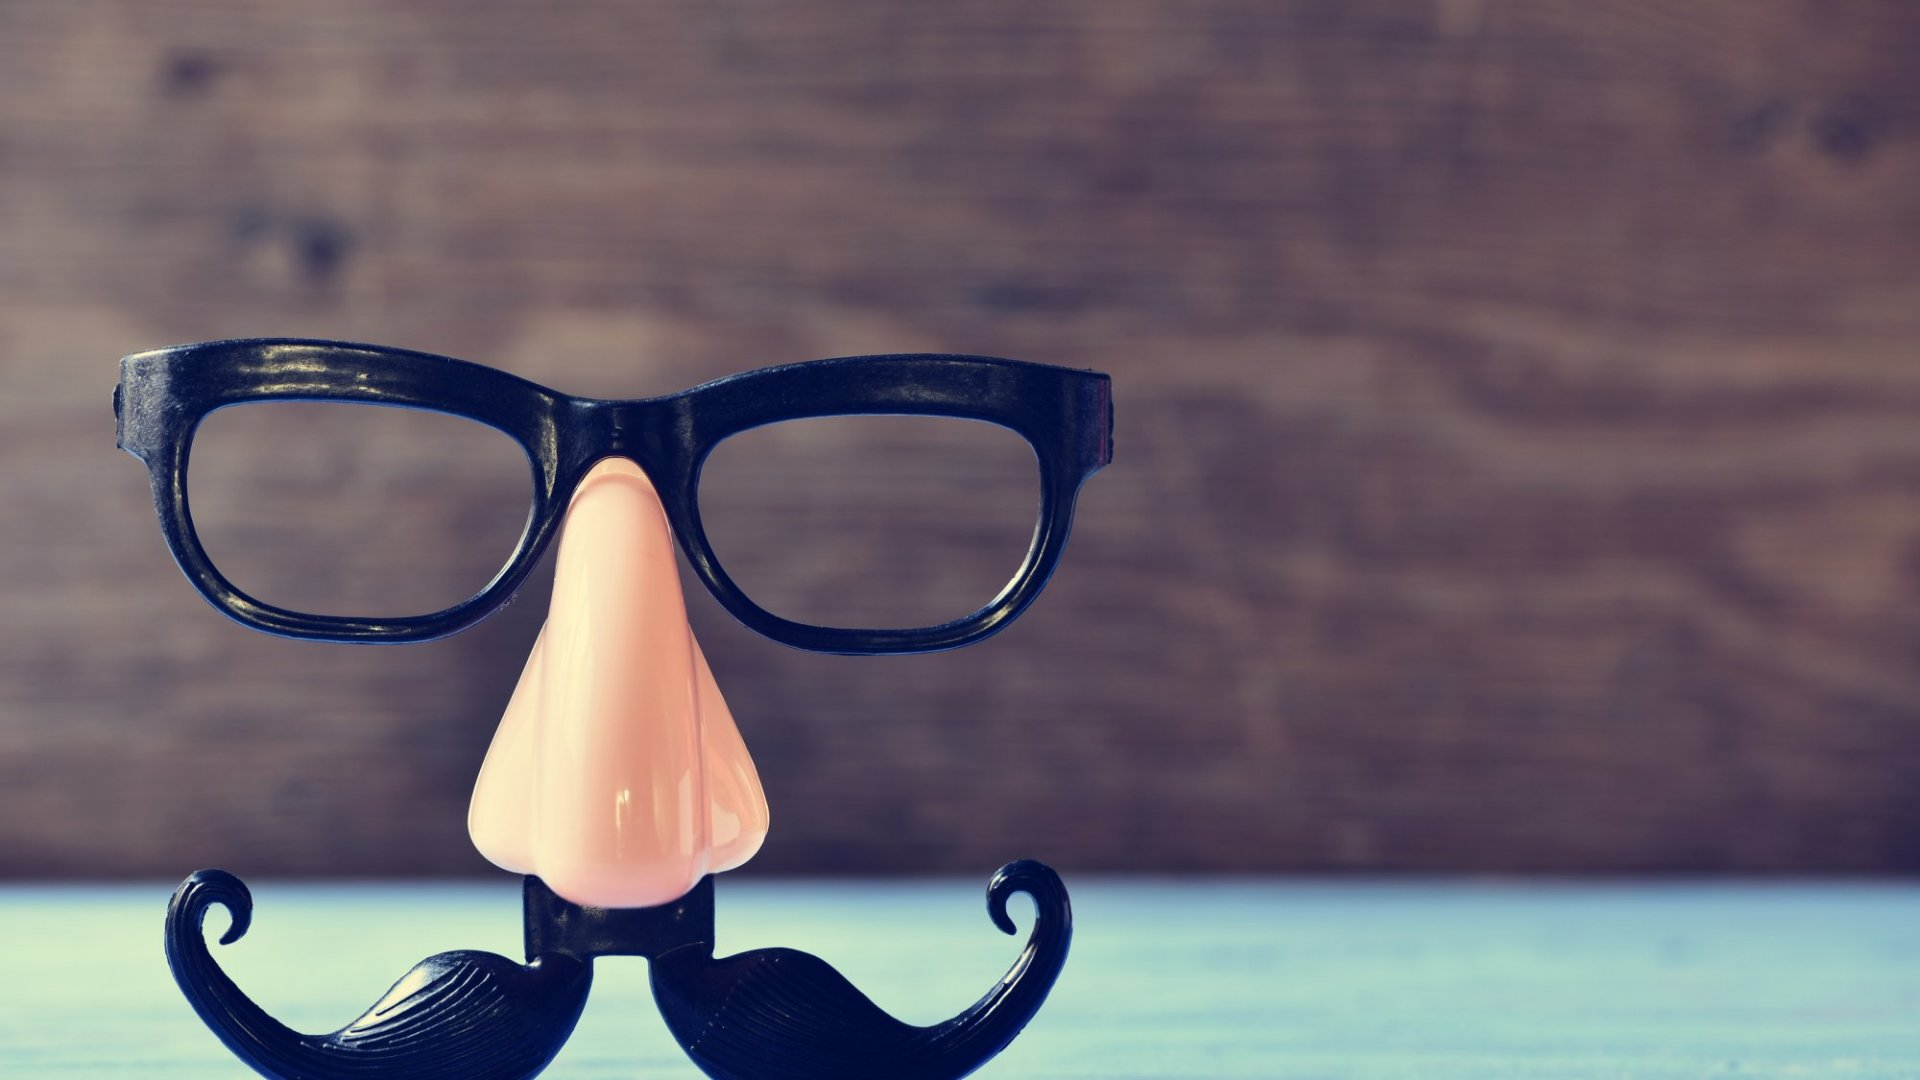 To Stop Impostor Syndrome, Do These 3 Things